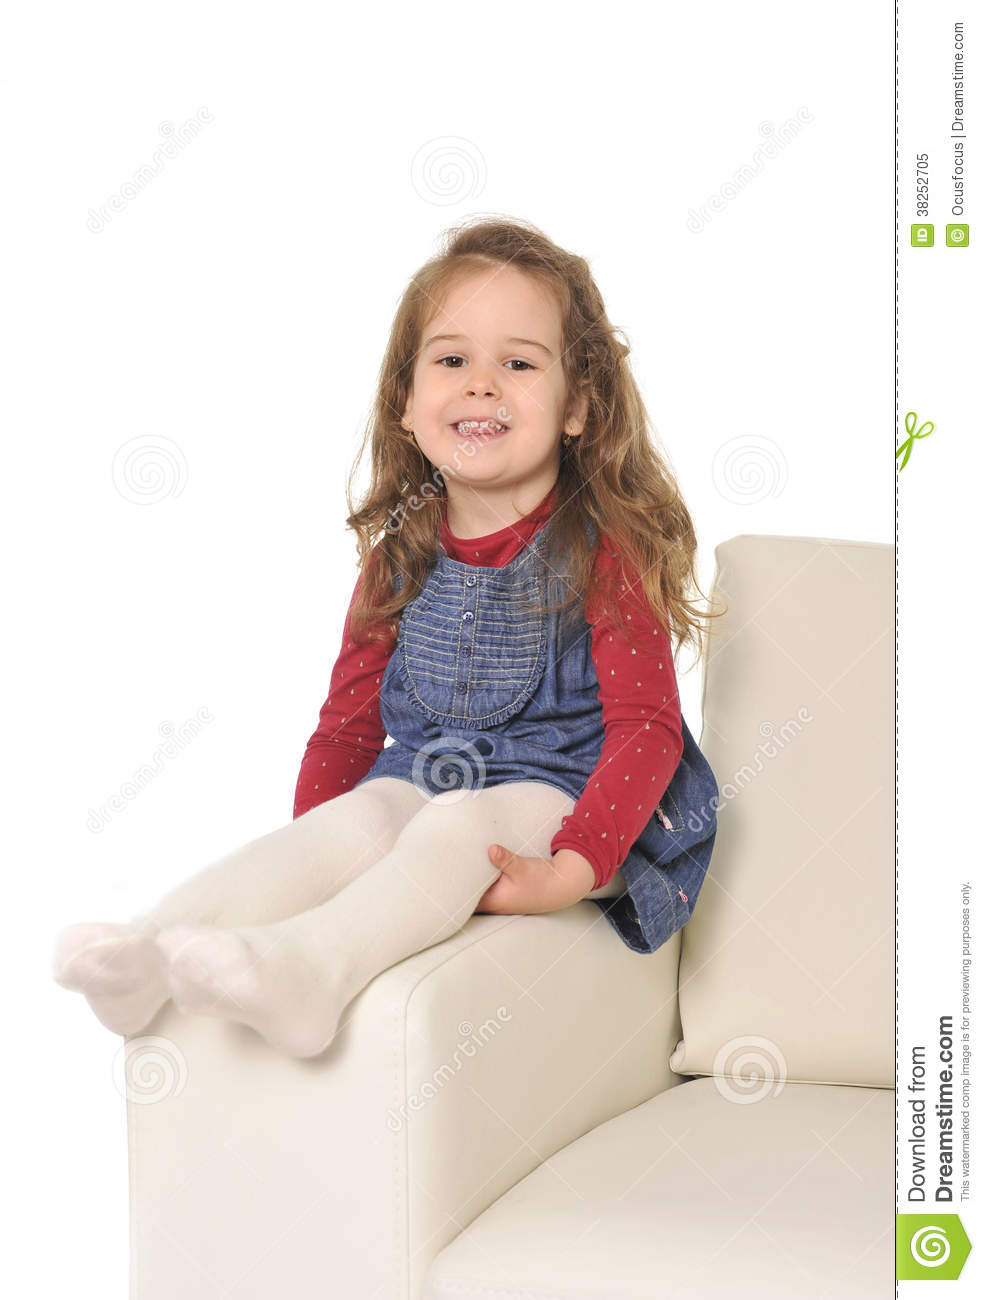 Happy adorable little girl with long hair sitting on the arm of couch